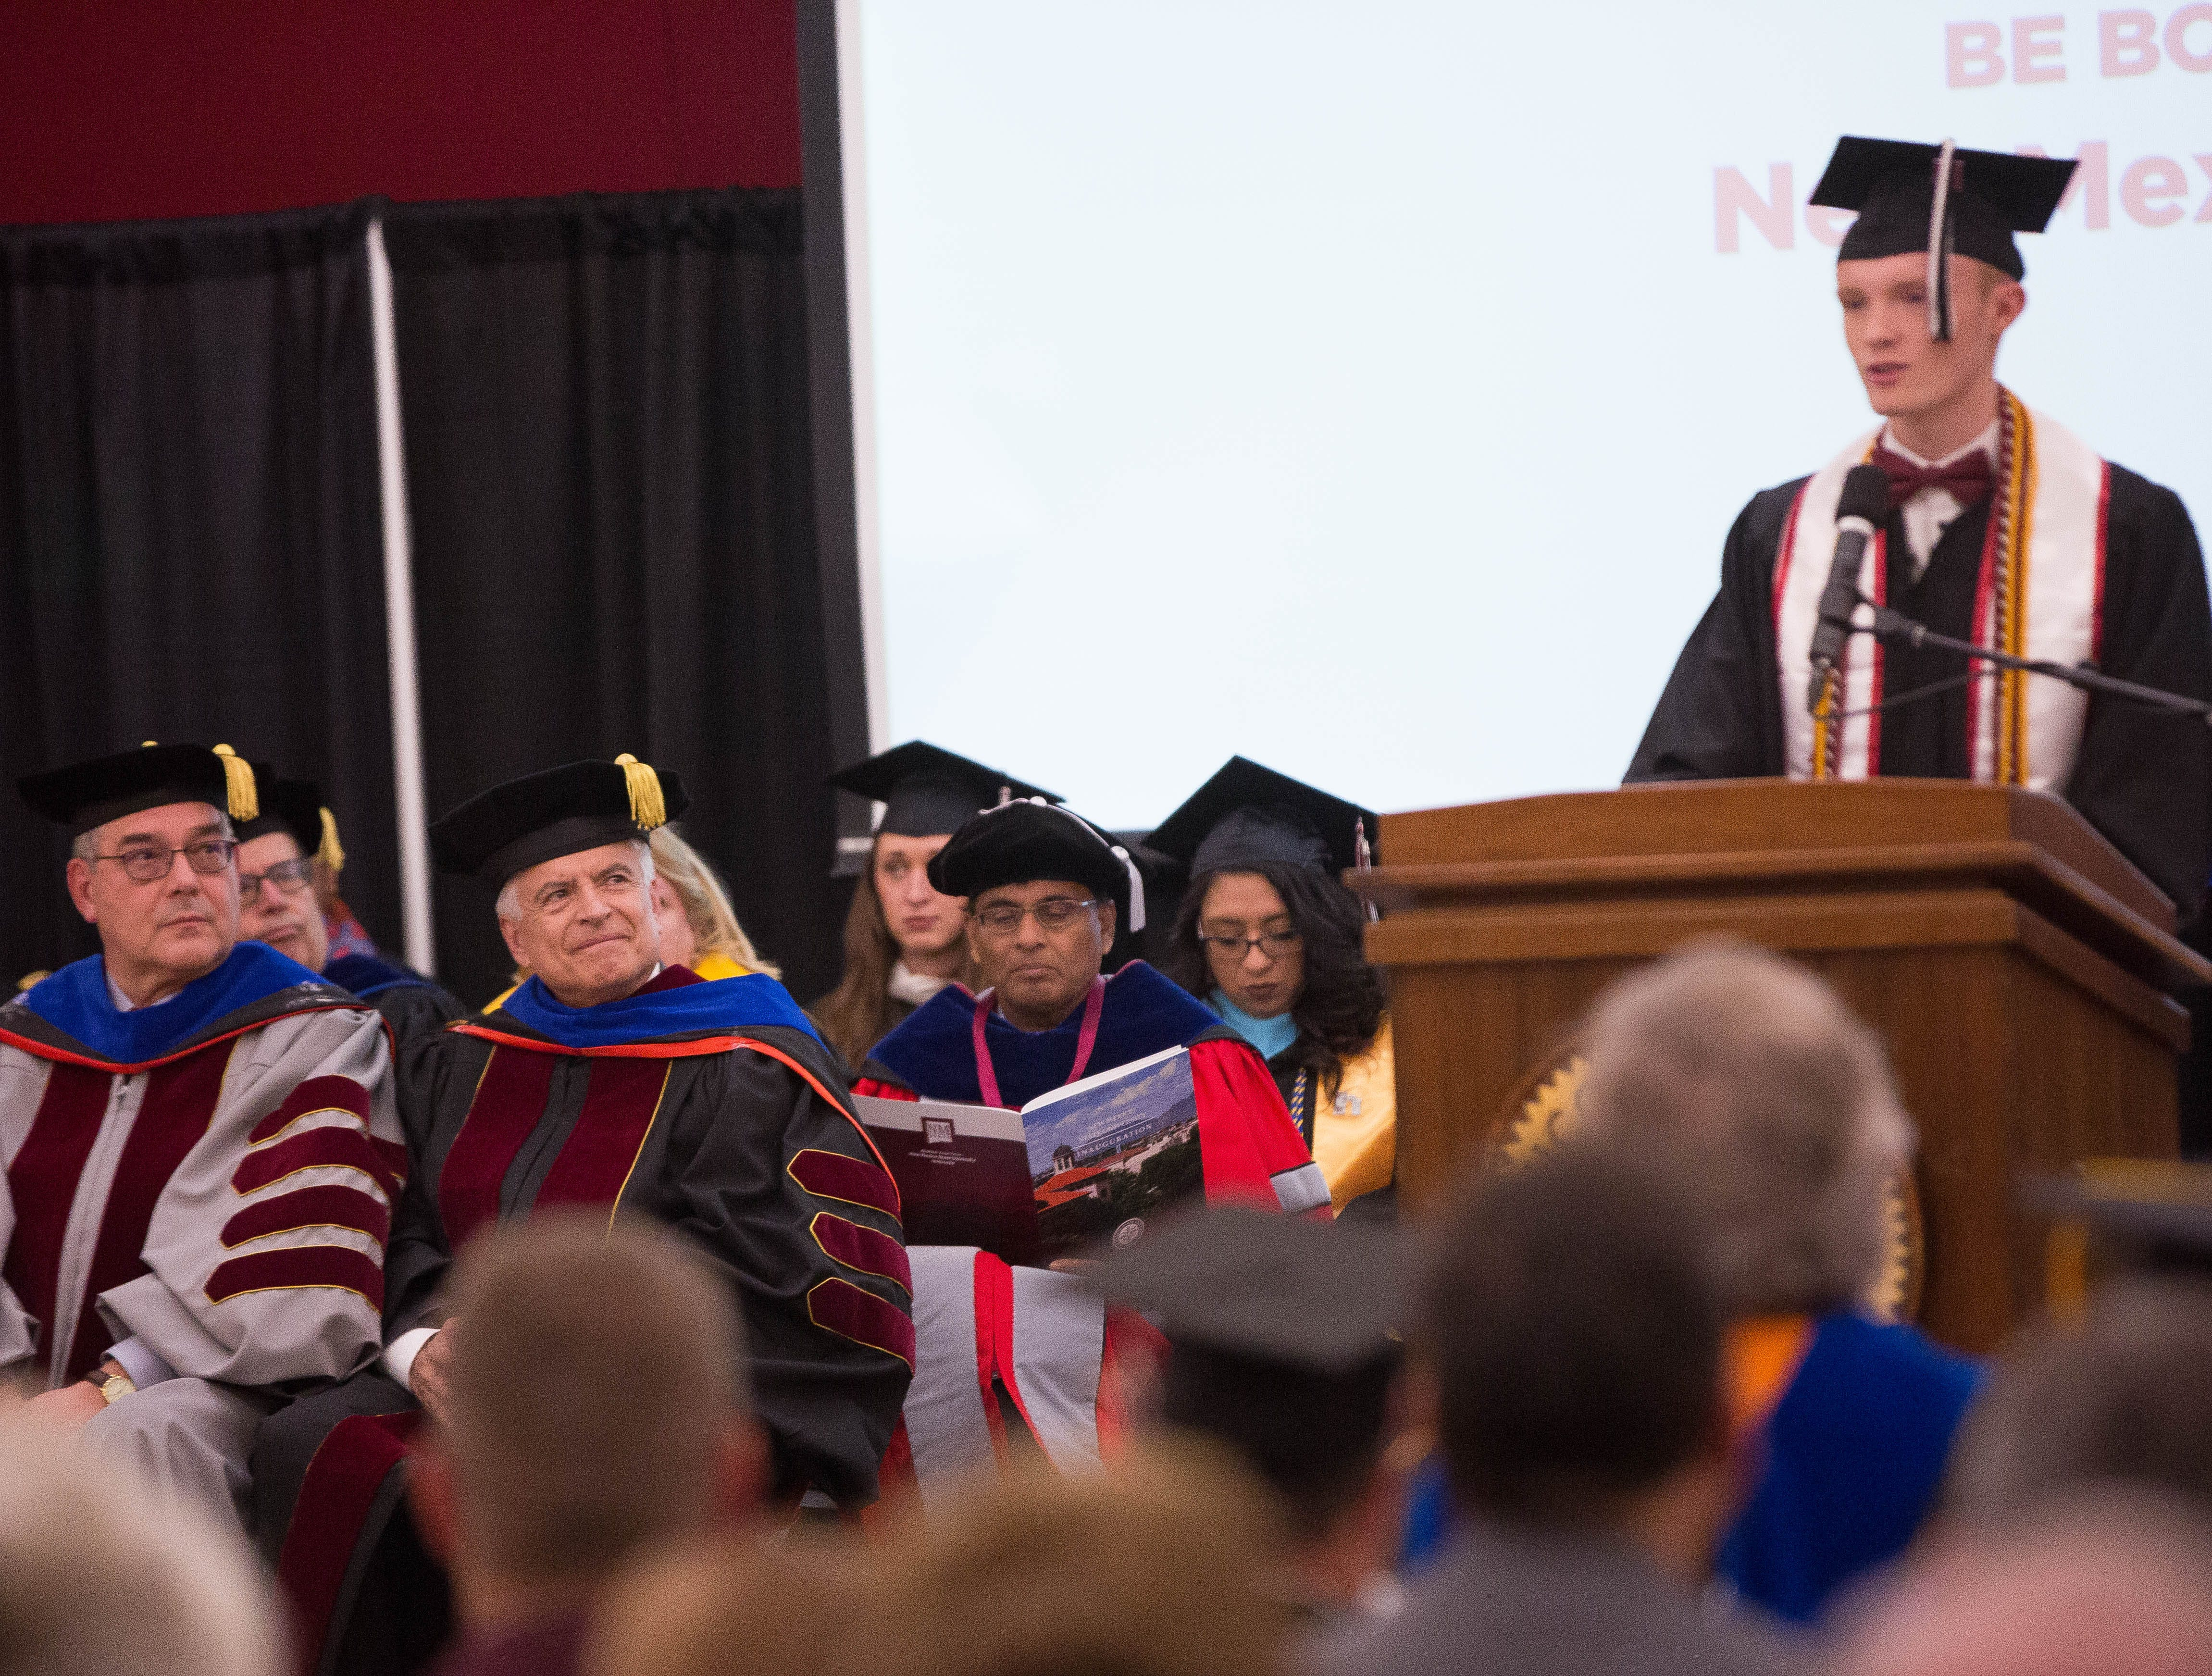 NMSU regents lower GPA standard for student leadership scholarships | Las Cruces Sun